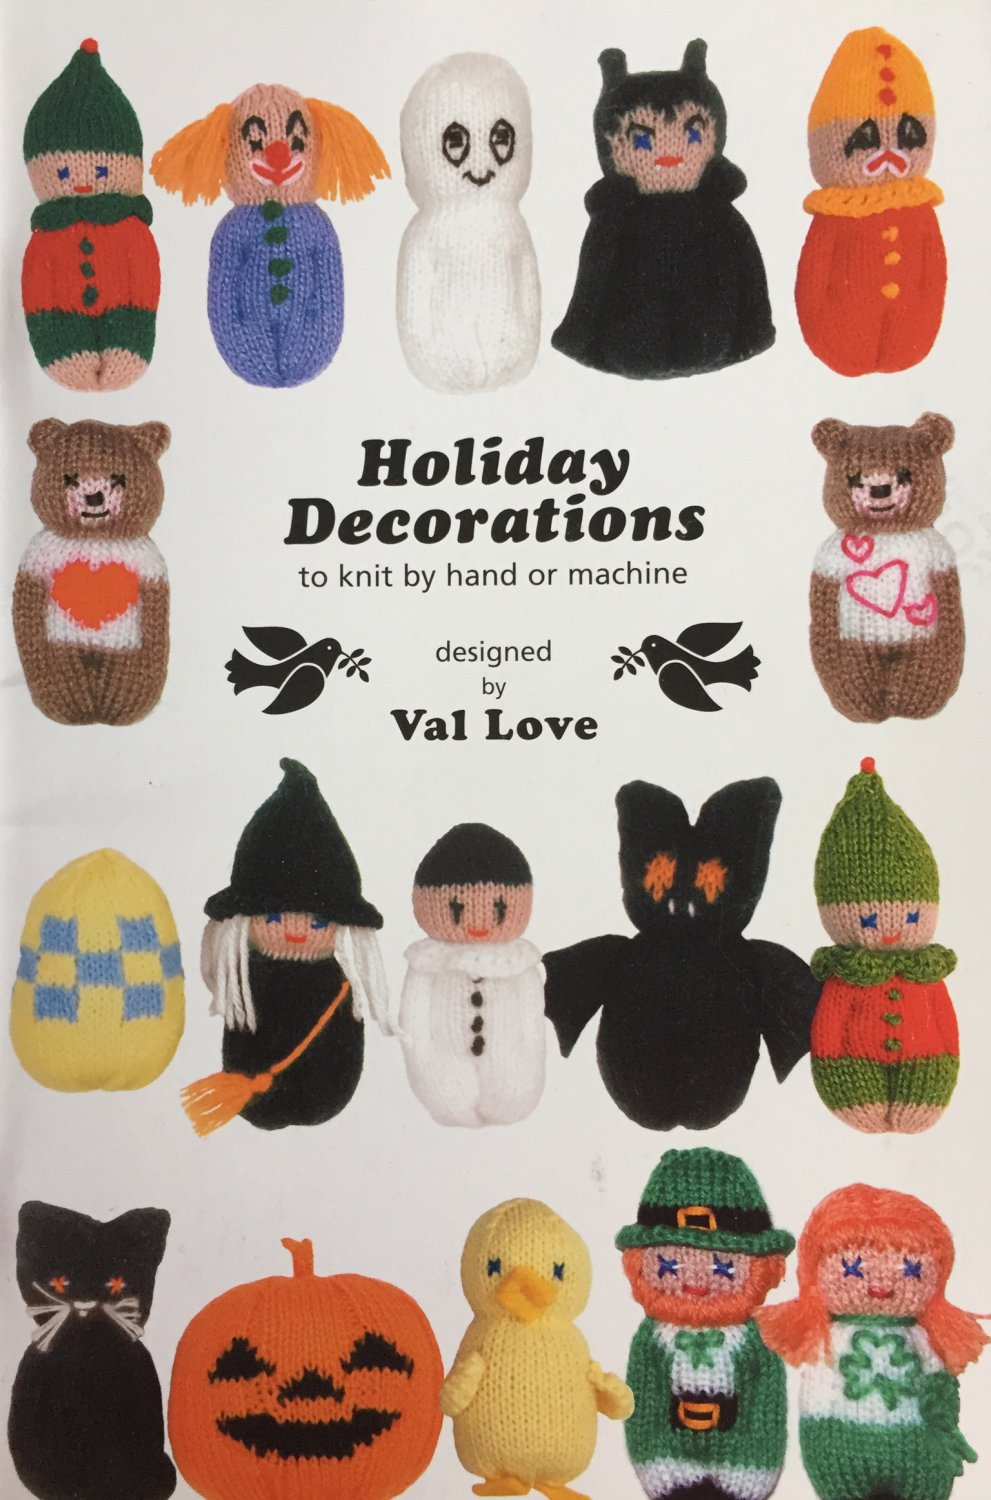 Holiday Decorations to knit by hand or machine Val Love